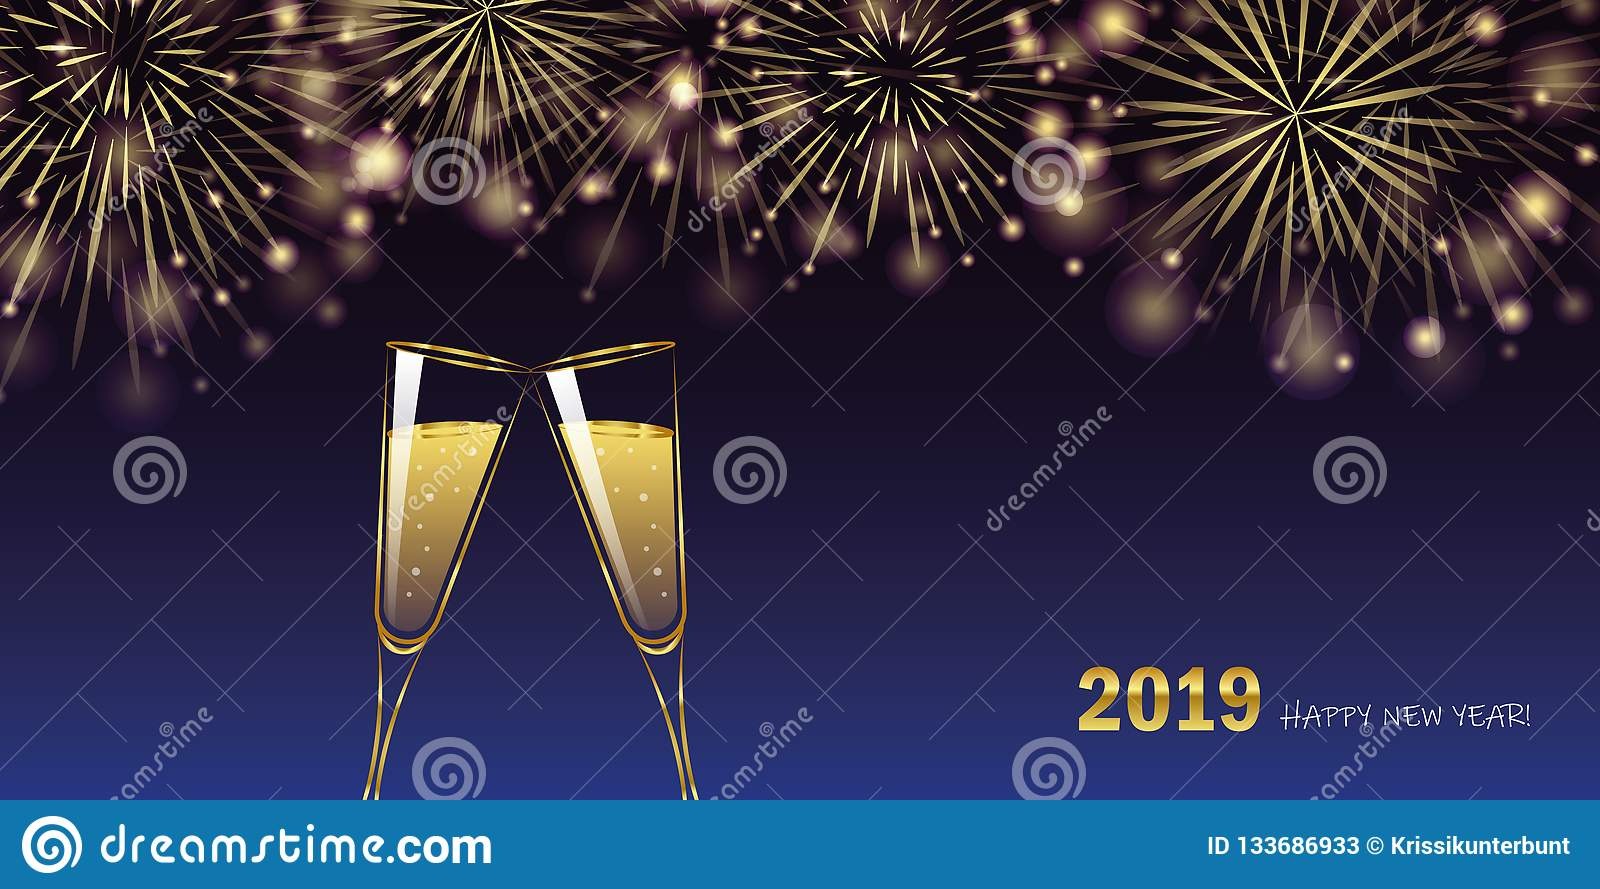 Happy new year 2019 golden firework and champagne glasses greeting card